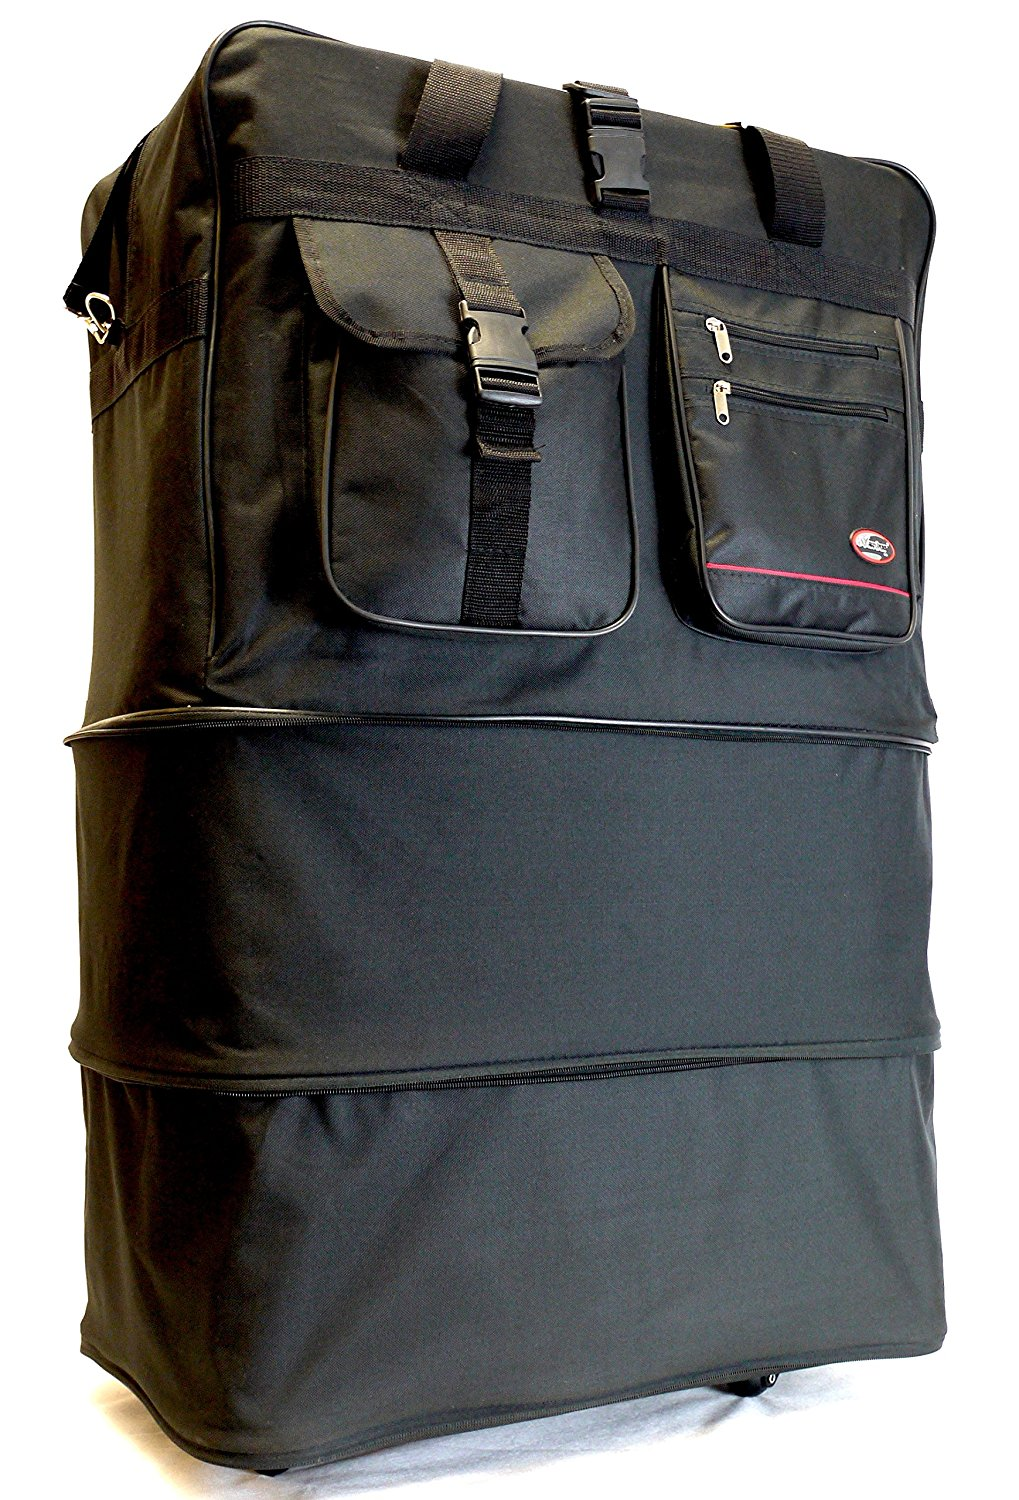 """40"""" Rolling Travel 3 Tiers Expandable Wheeled Duffle Bag   Lightweight Spinner Suitcase Luggage by Argo Sport"""